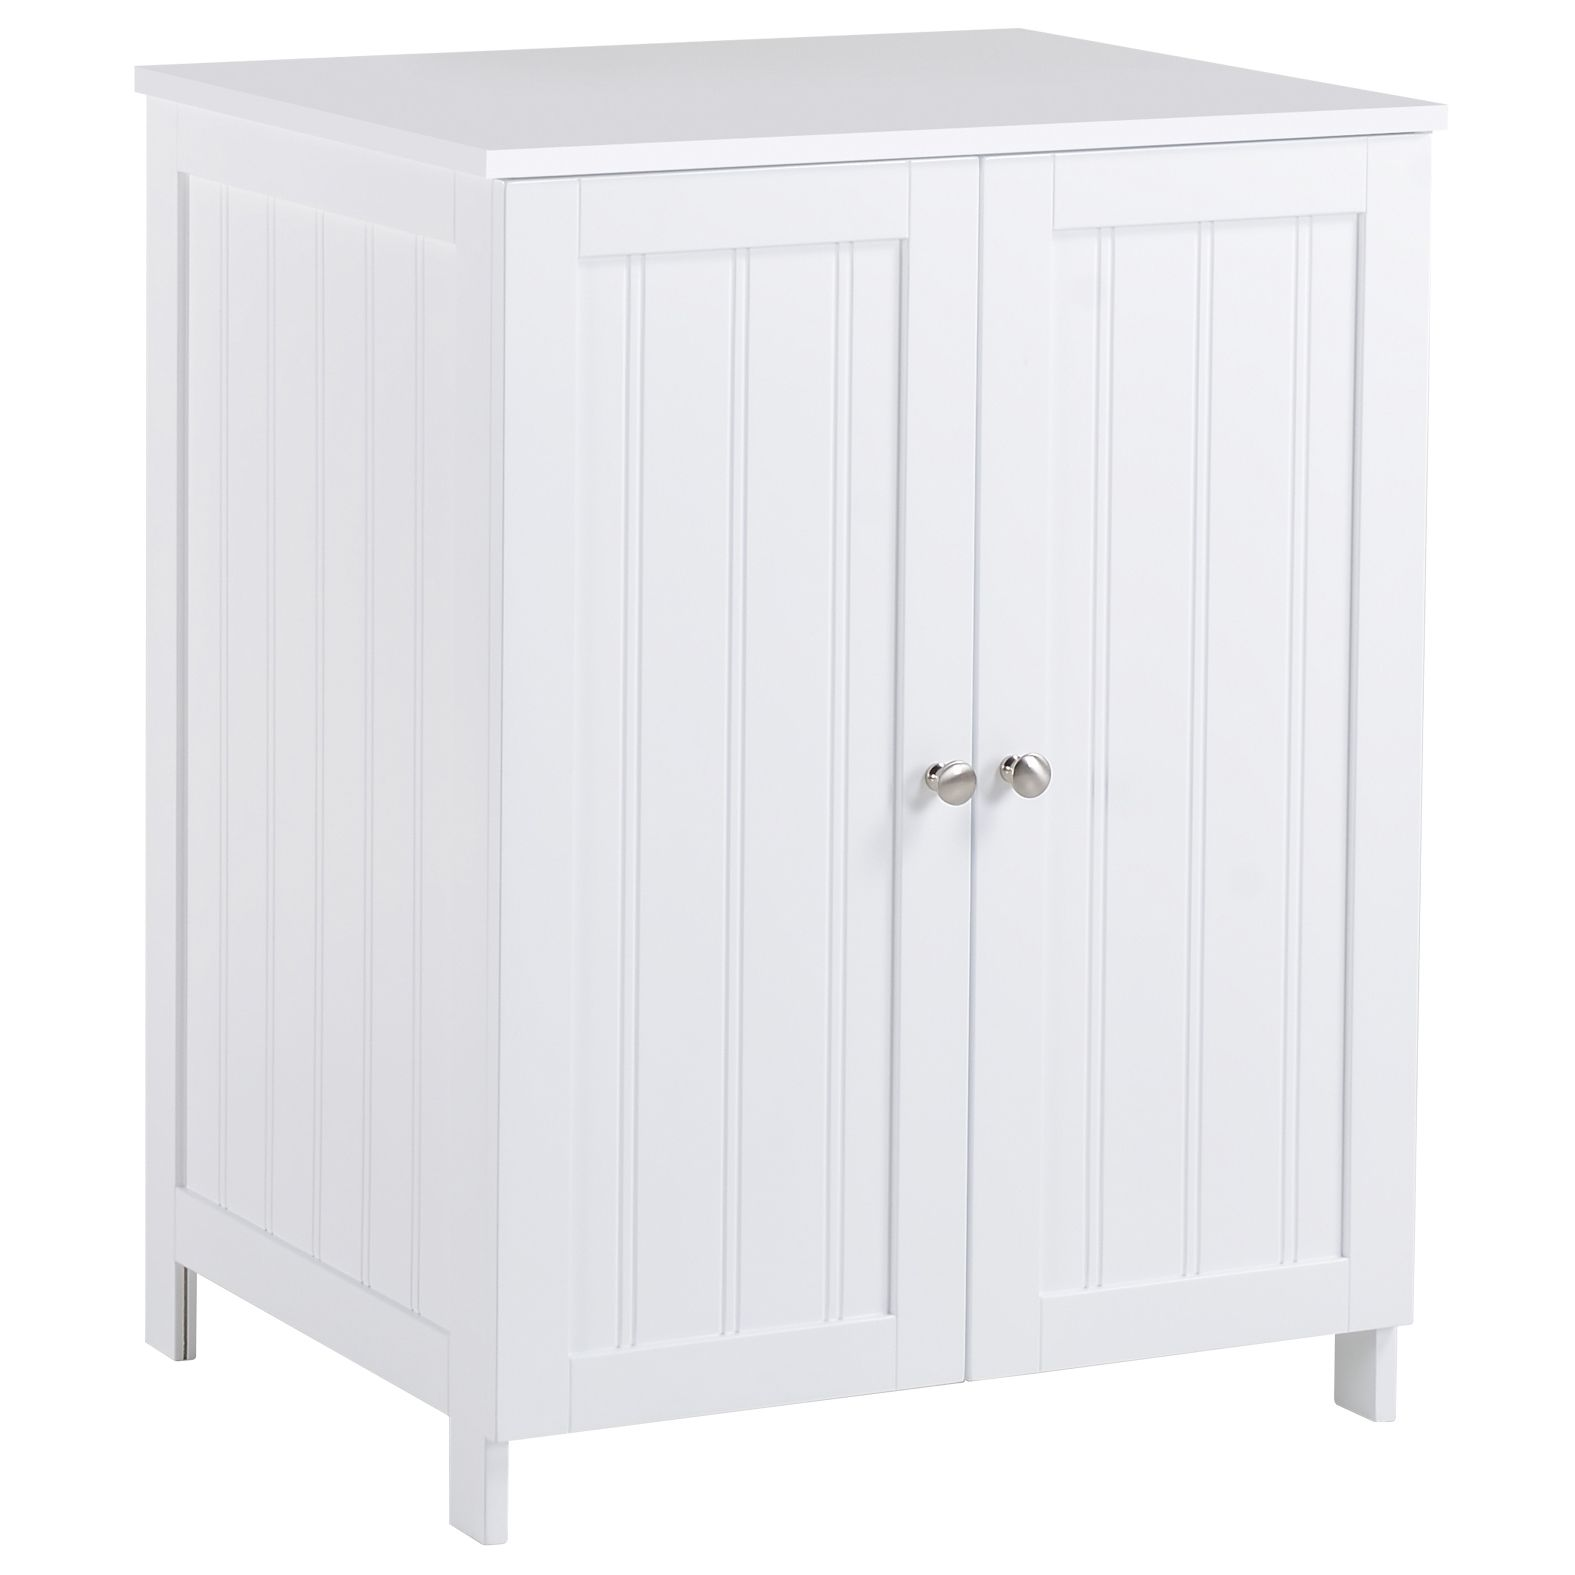 Bathroom Cabinets Uk Bq Nicolina White Vanity Unit Departments Diy At Bq